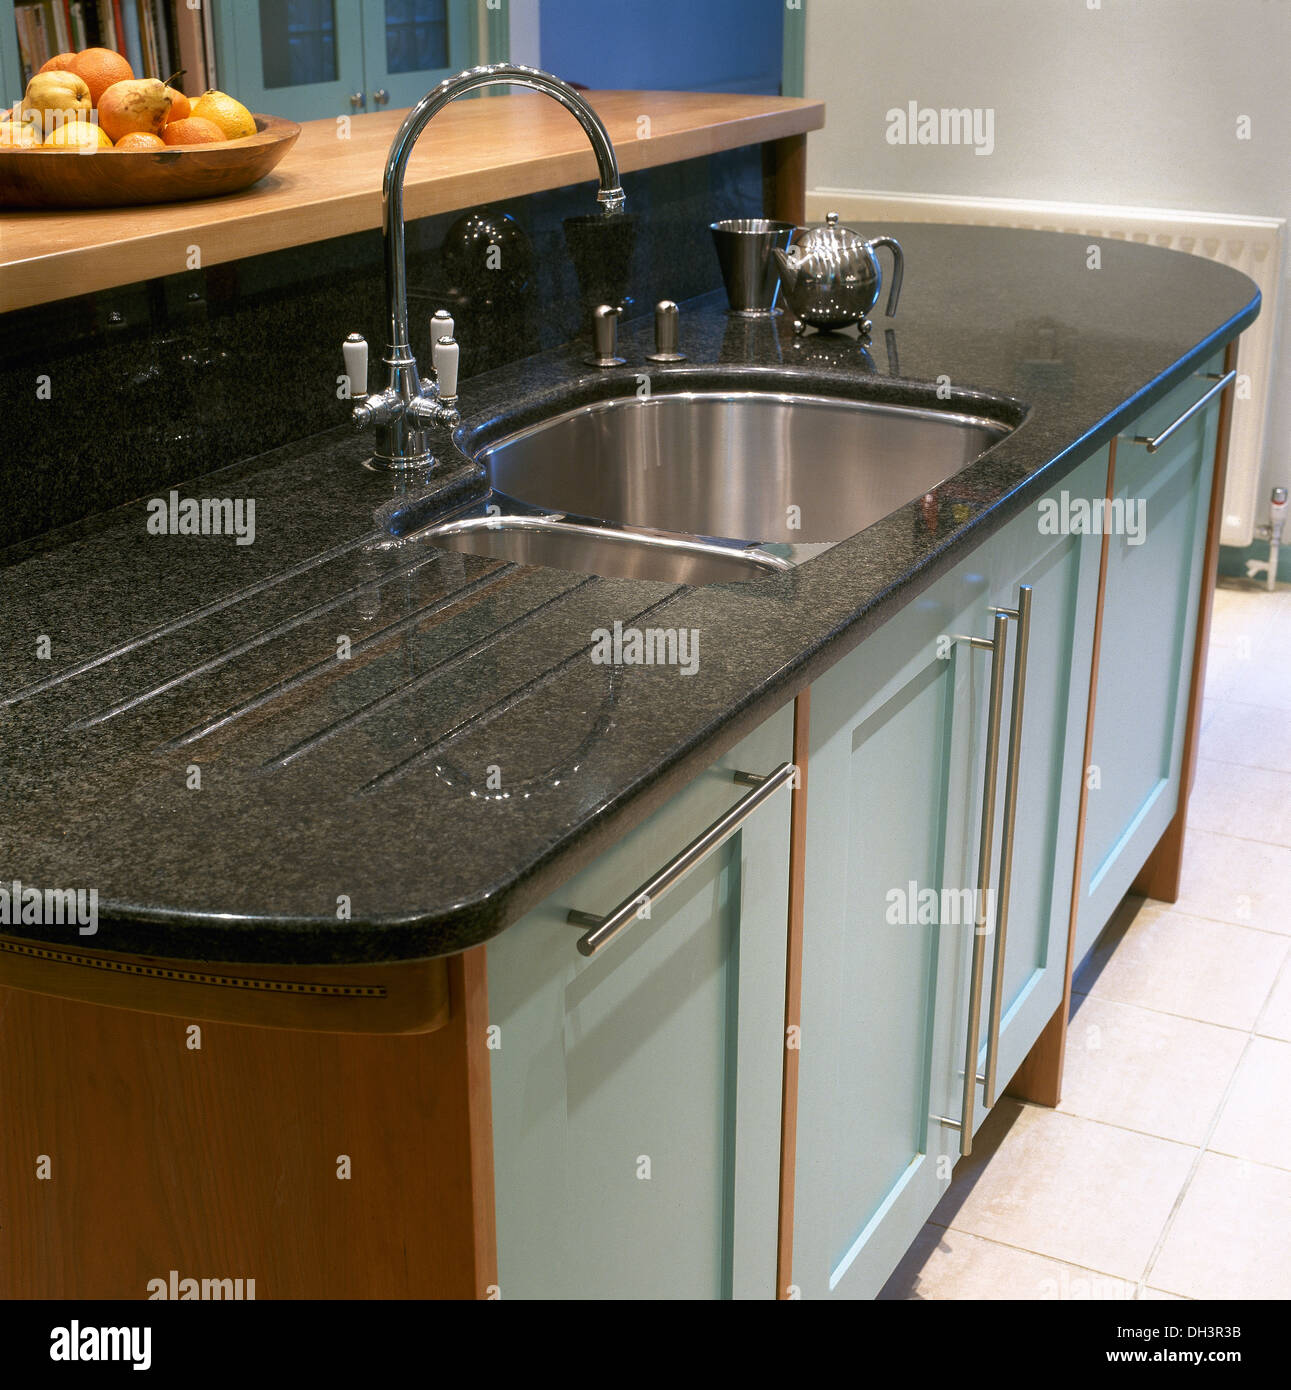 Chrome tap above under set stainless steel sink in pale blue ...